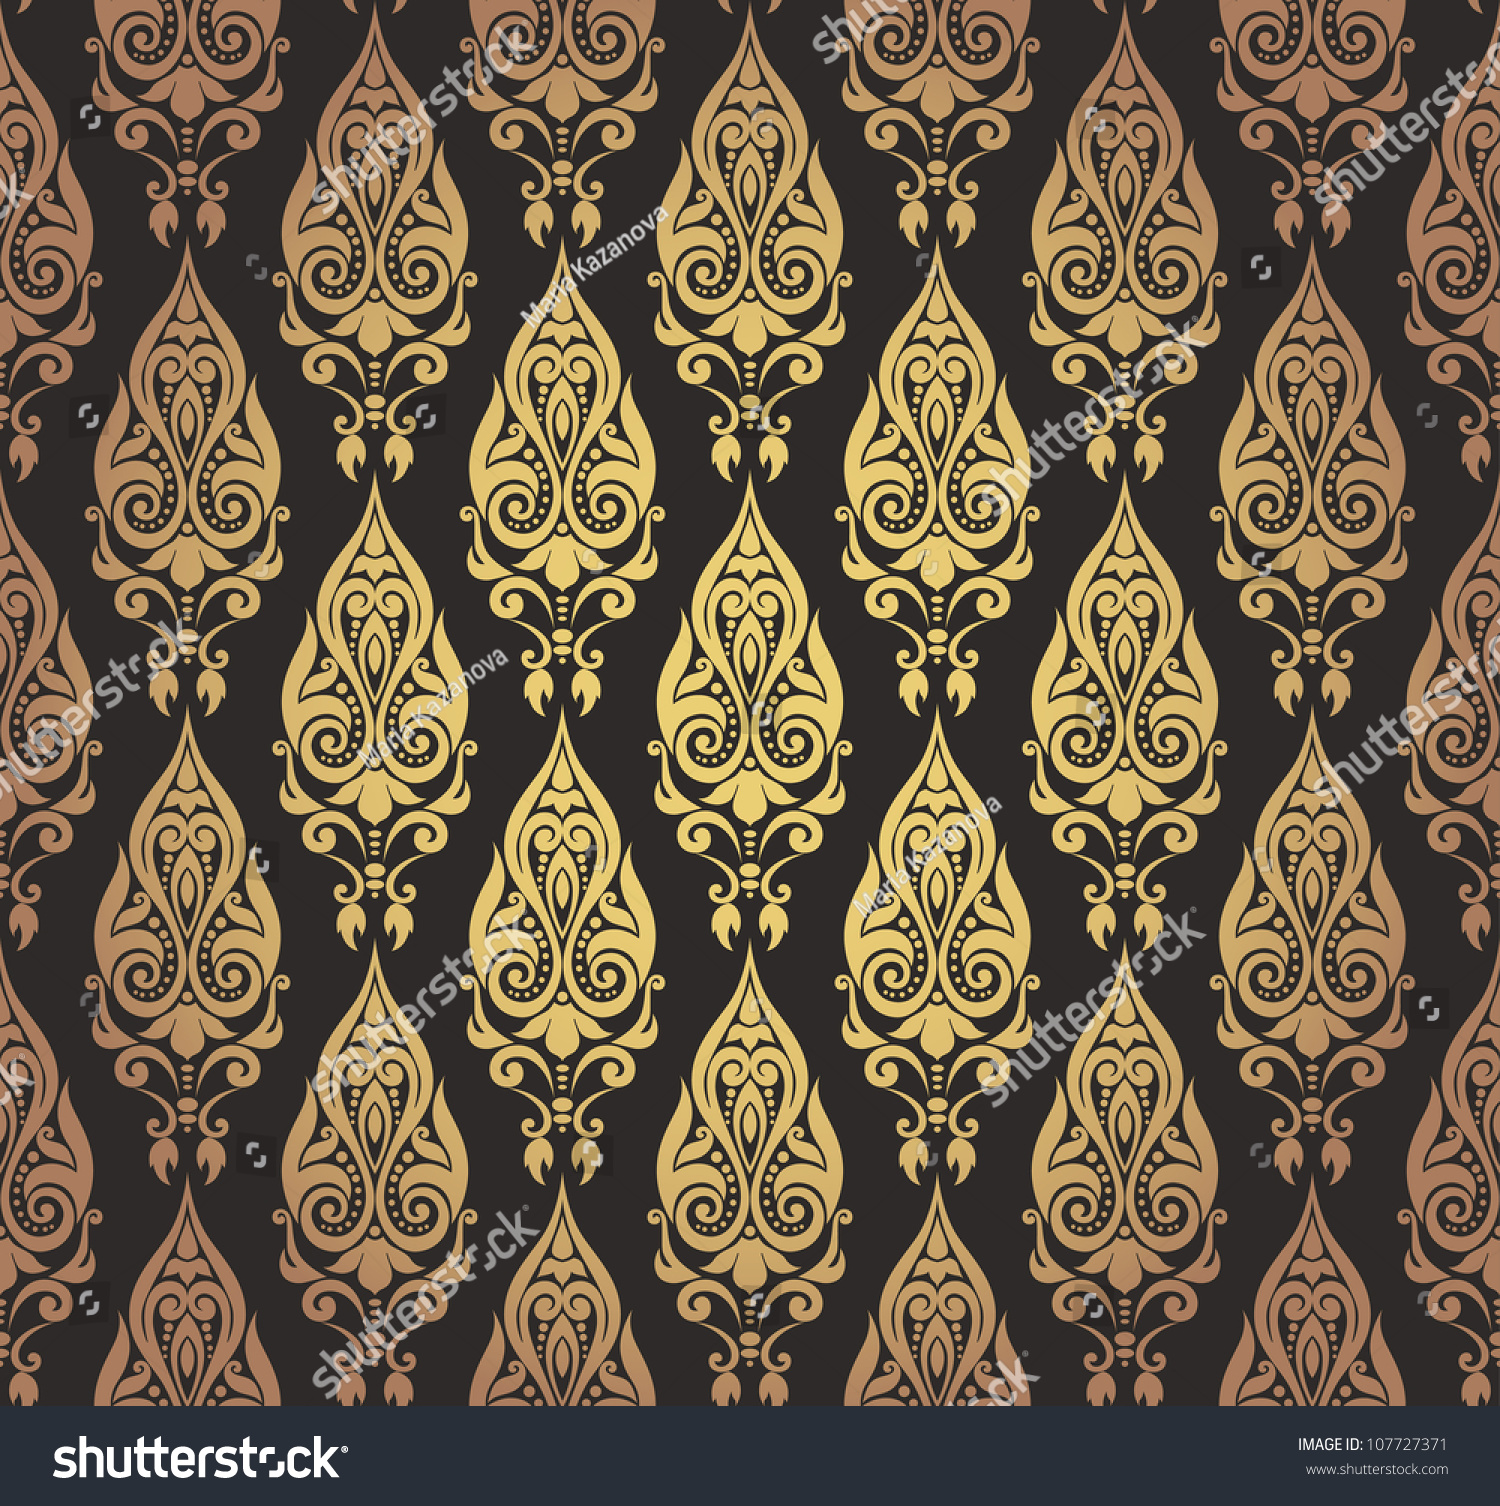 vector illustration of seamless decorative wallpaper with